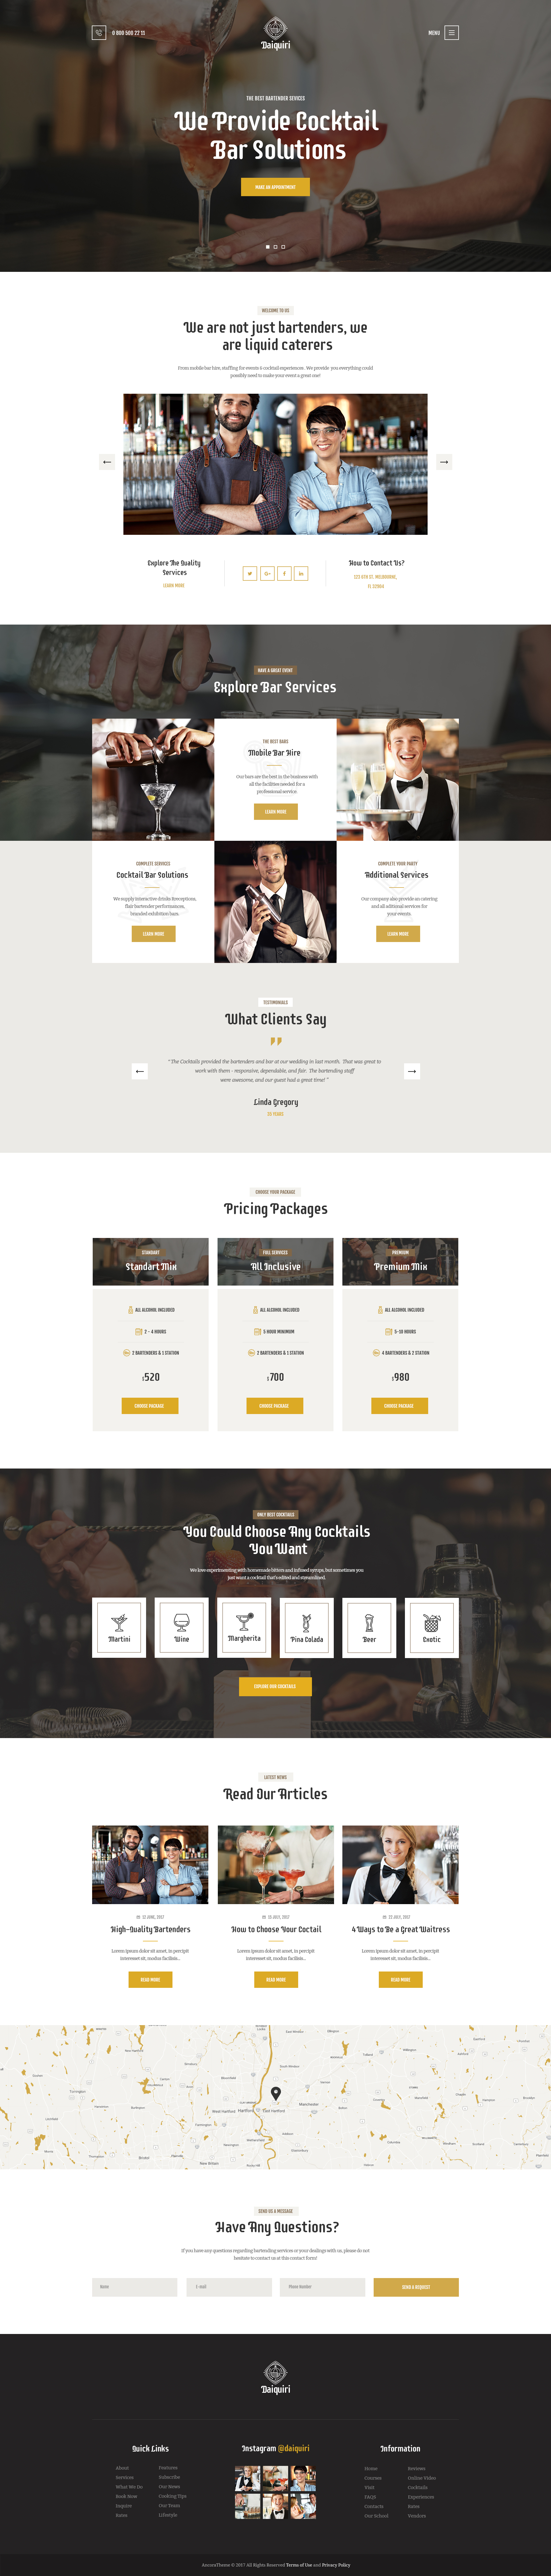 Daiquiri Bartender Services Catering Cocktail Wordpress Theme By Themerex